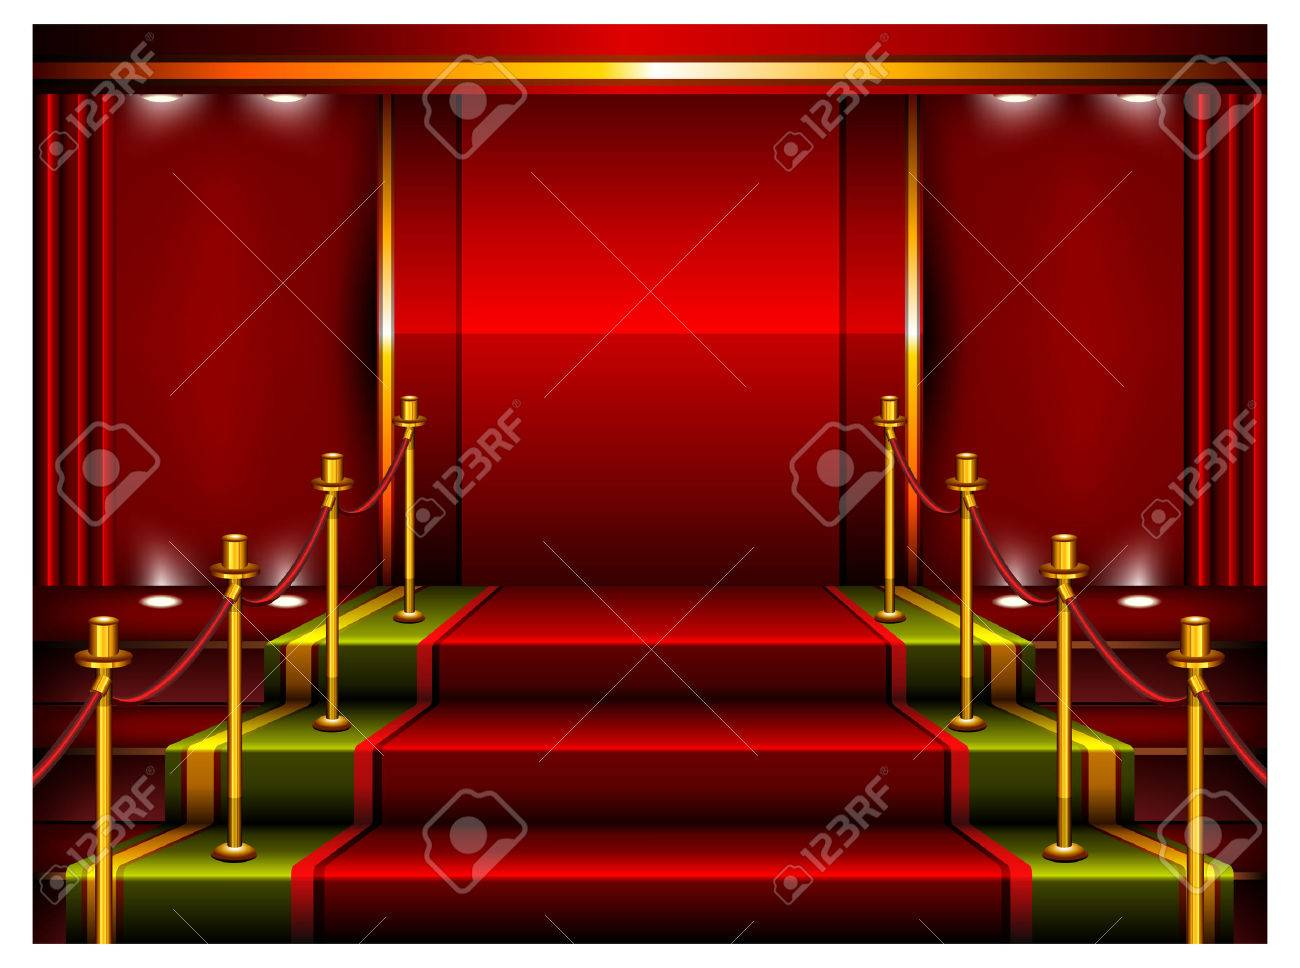 Red carpet and pedestal for rewarding ceremony, vector illustration Stock Vector - 6055166